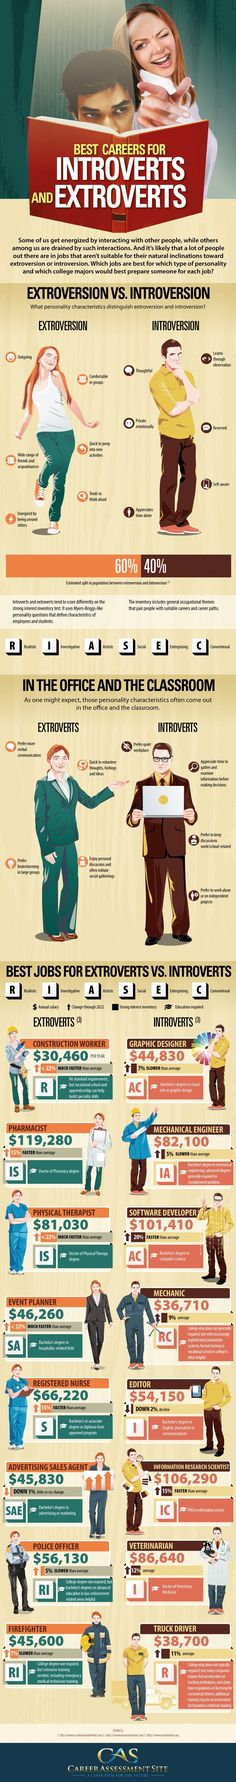 These jobs are introvert-friendly.